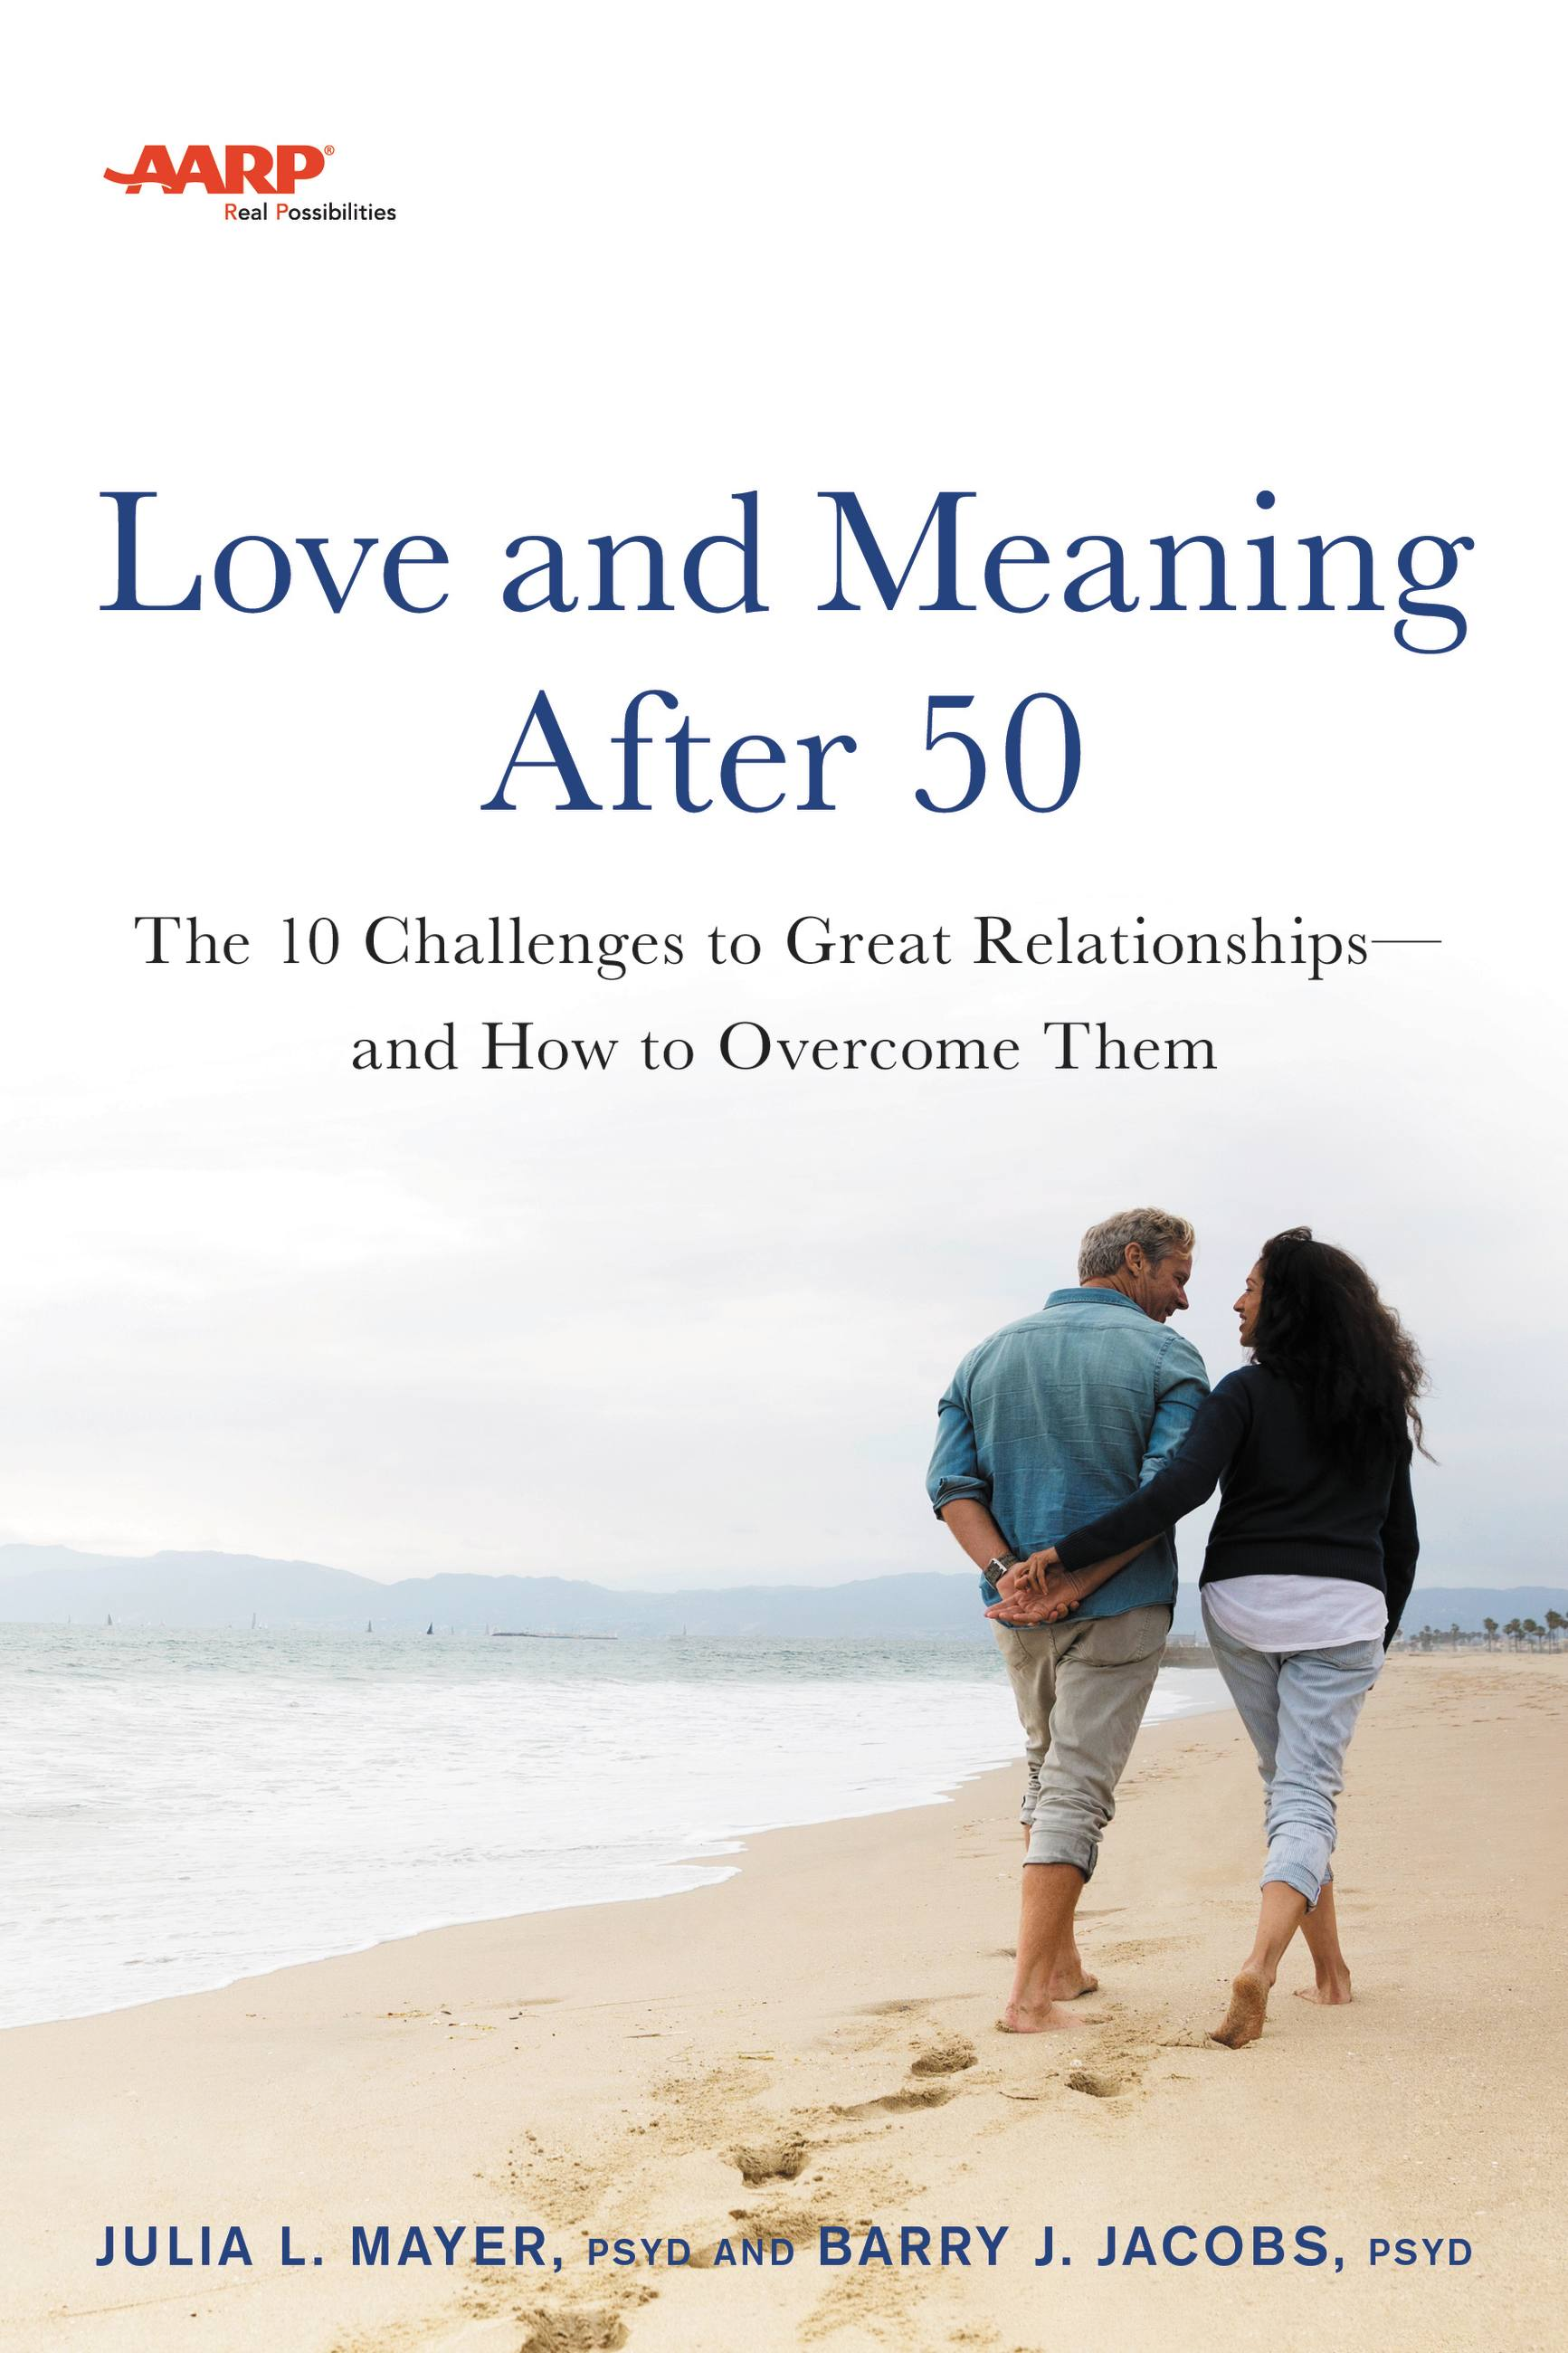 AARP Love and Meaning after 50 The 10 Challenges to Great Relationships¿and How to Overcome Them